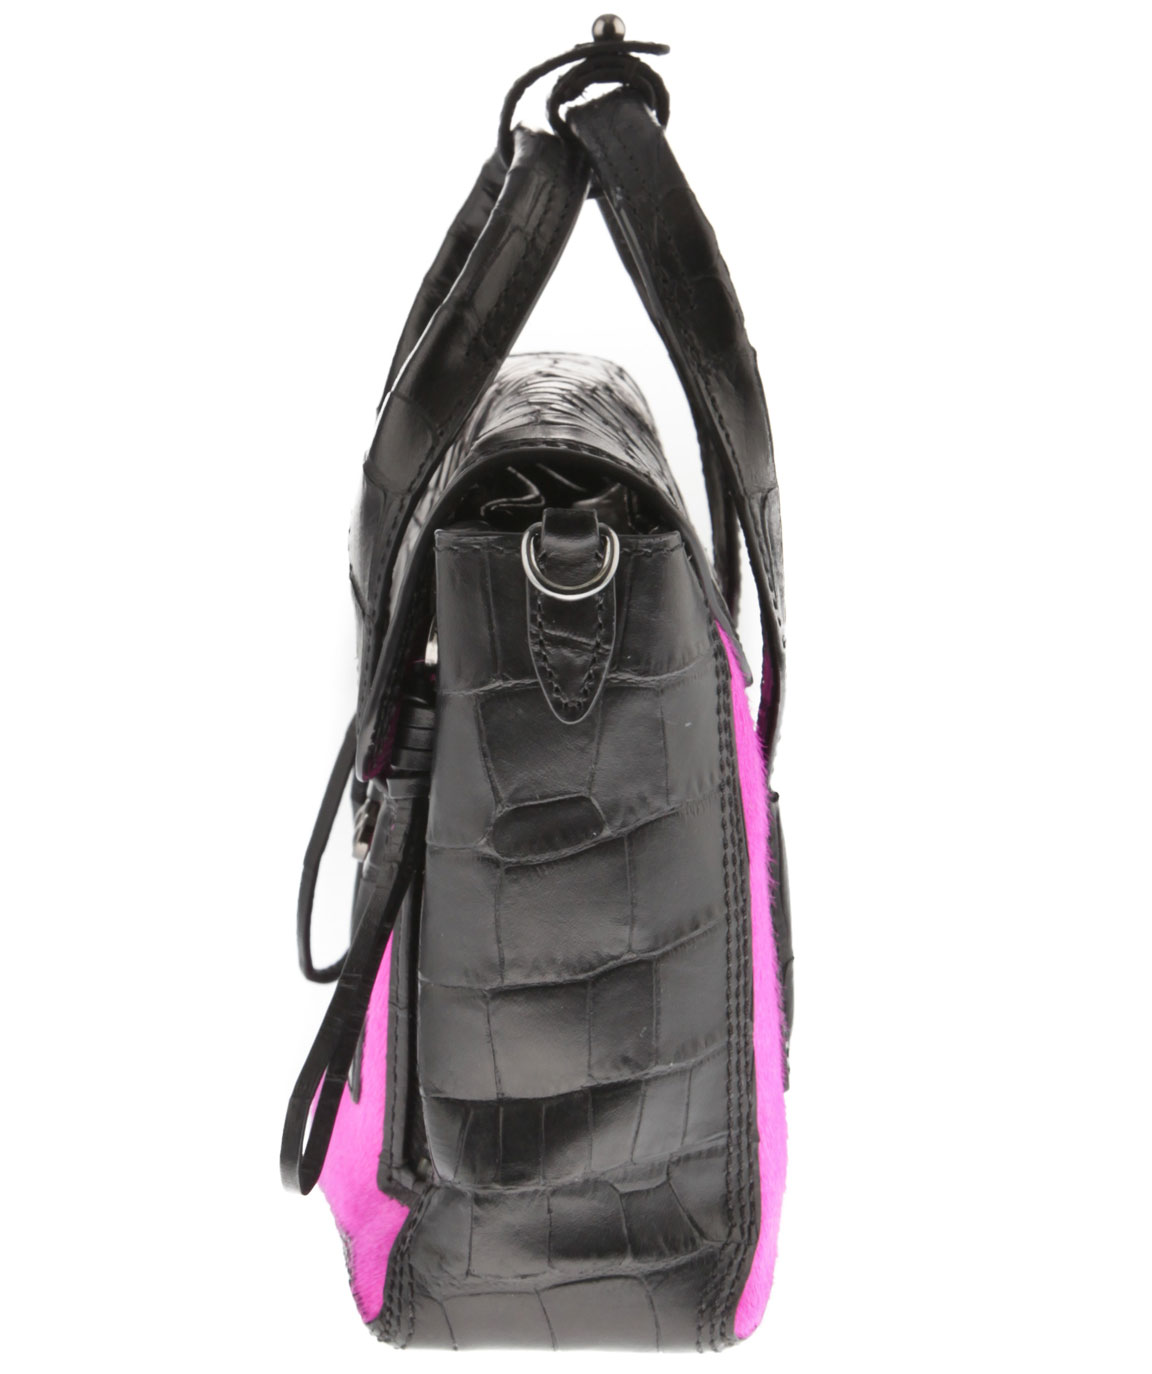 Mini Pashki in Black Leather with Pink Goat Skin Front